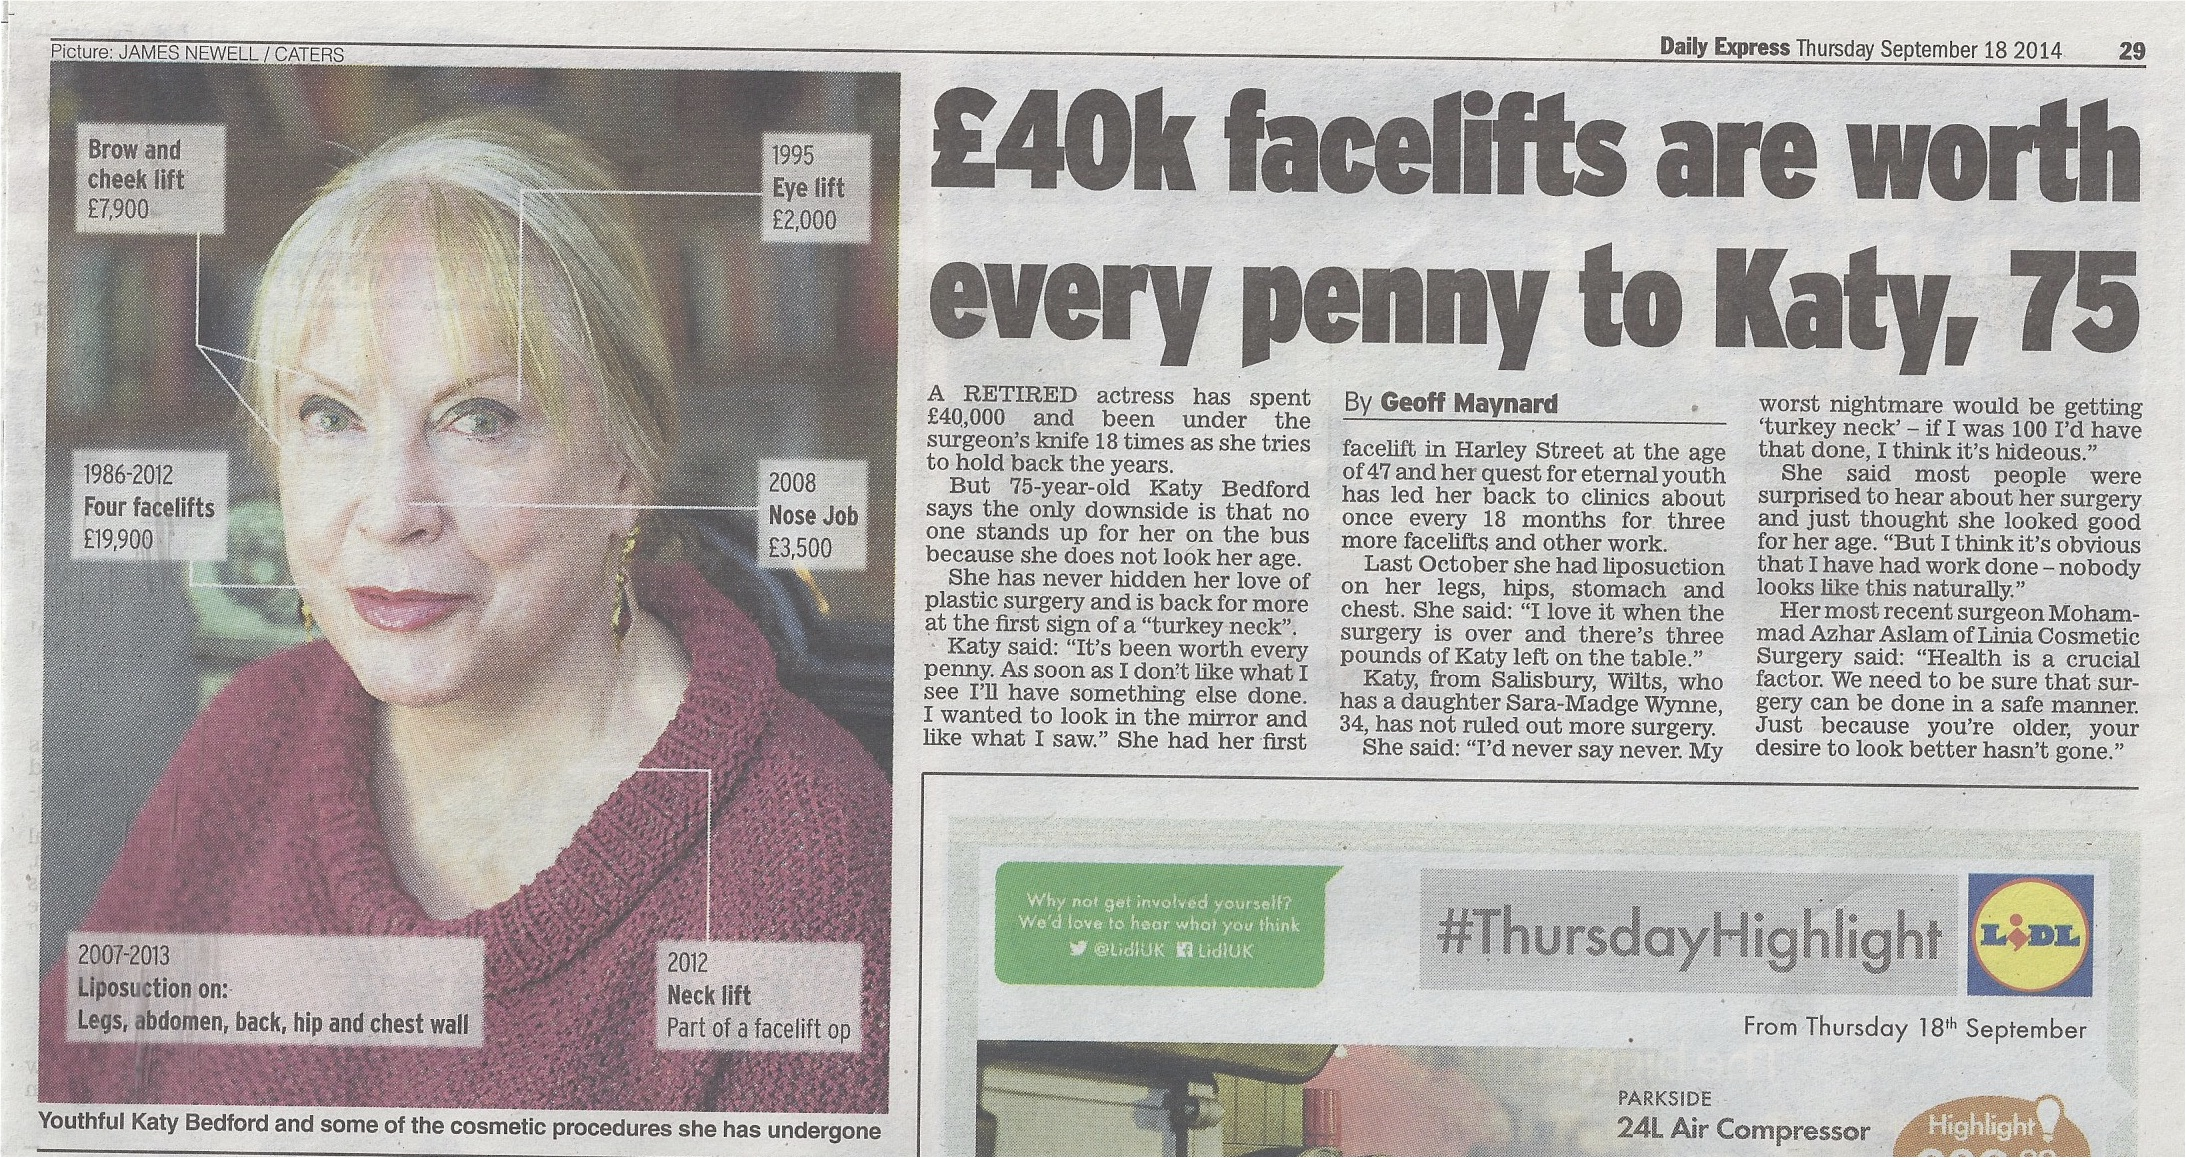 Facelifts are worth every penny in the Express